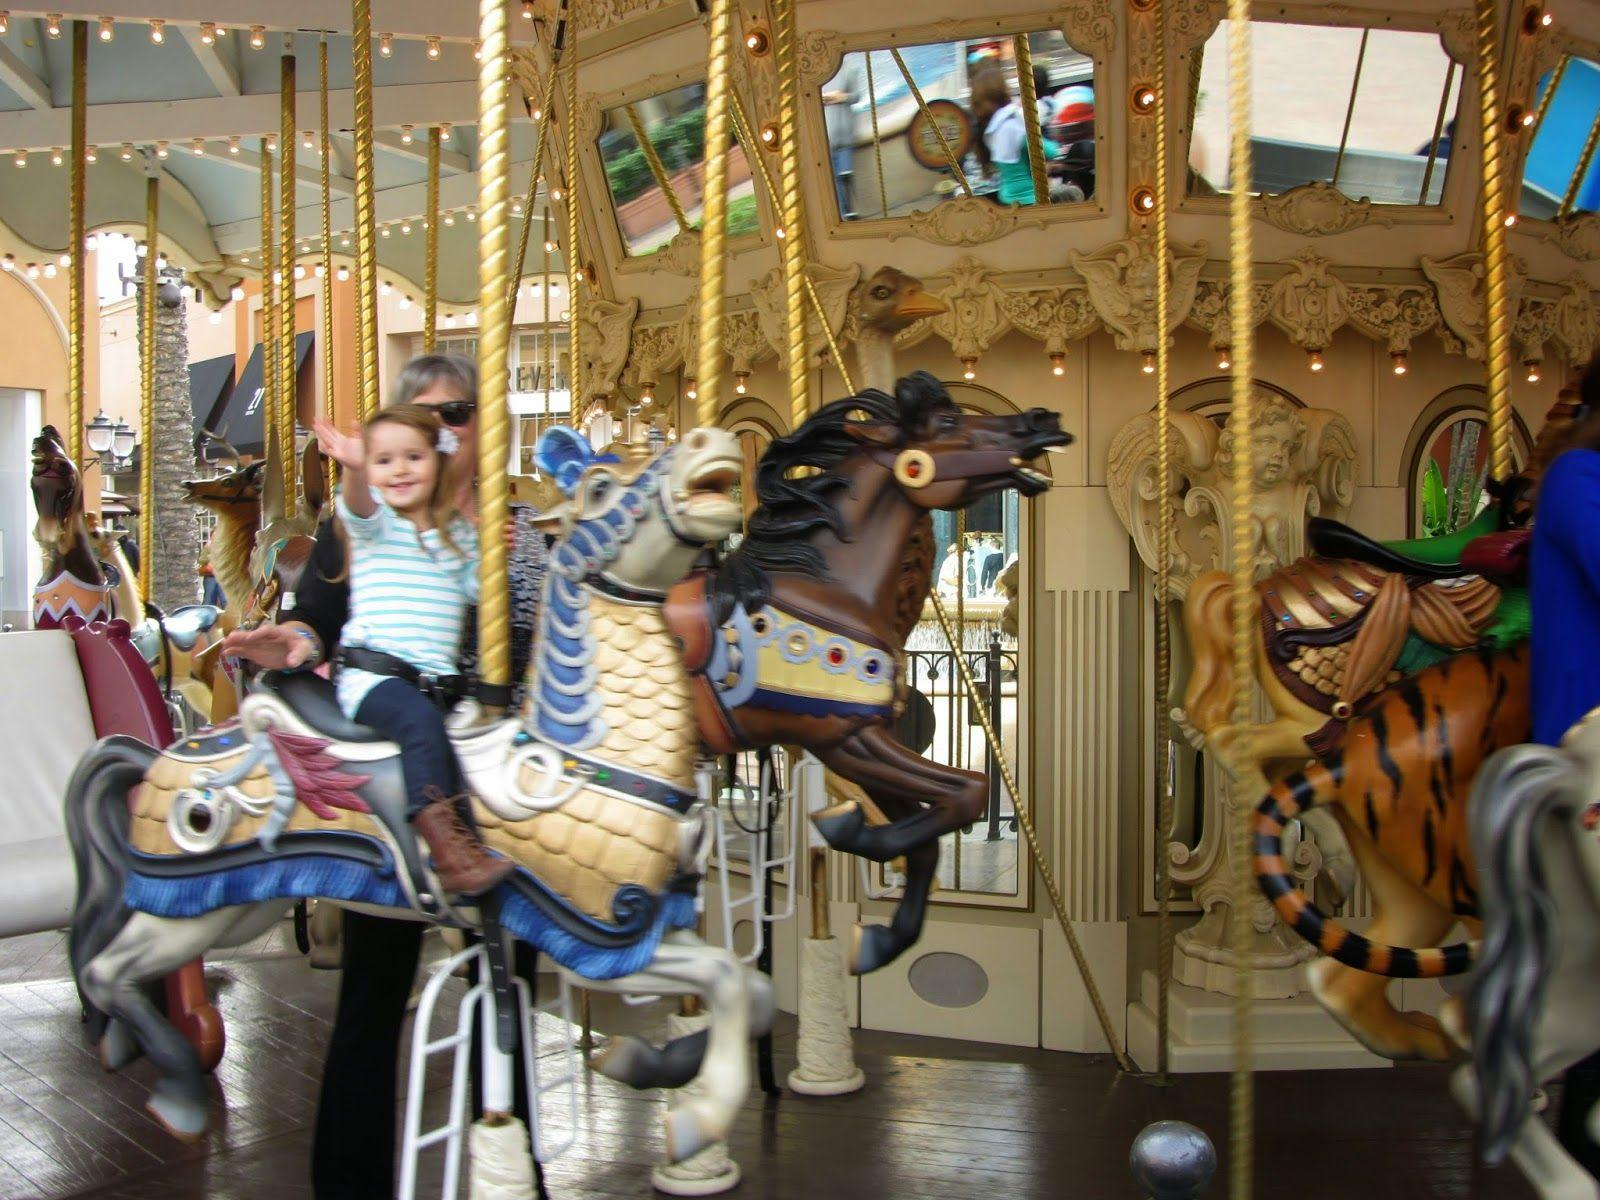 Merry-go-round Wallpapers 2015 - Wallpaper Cave